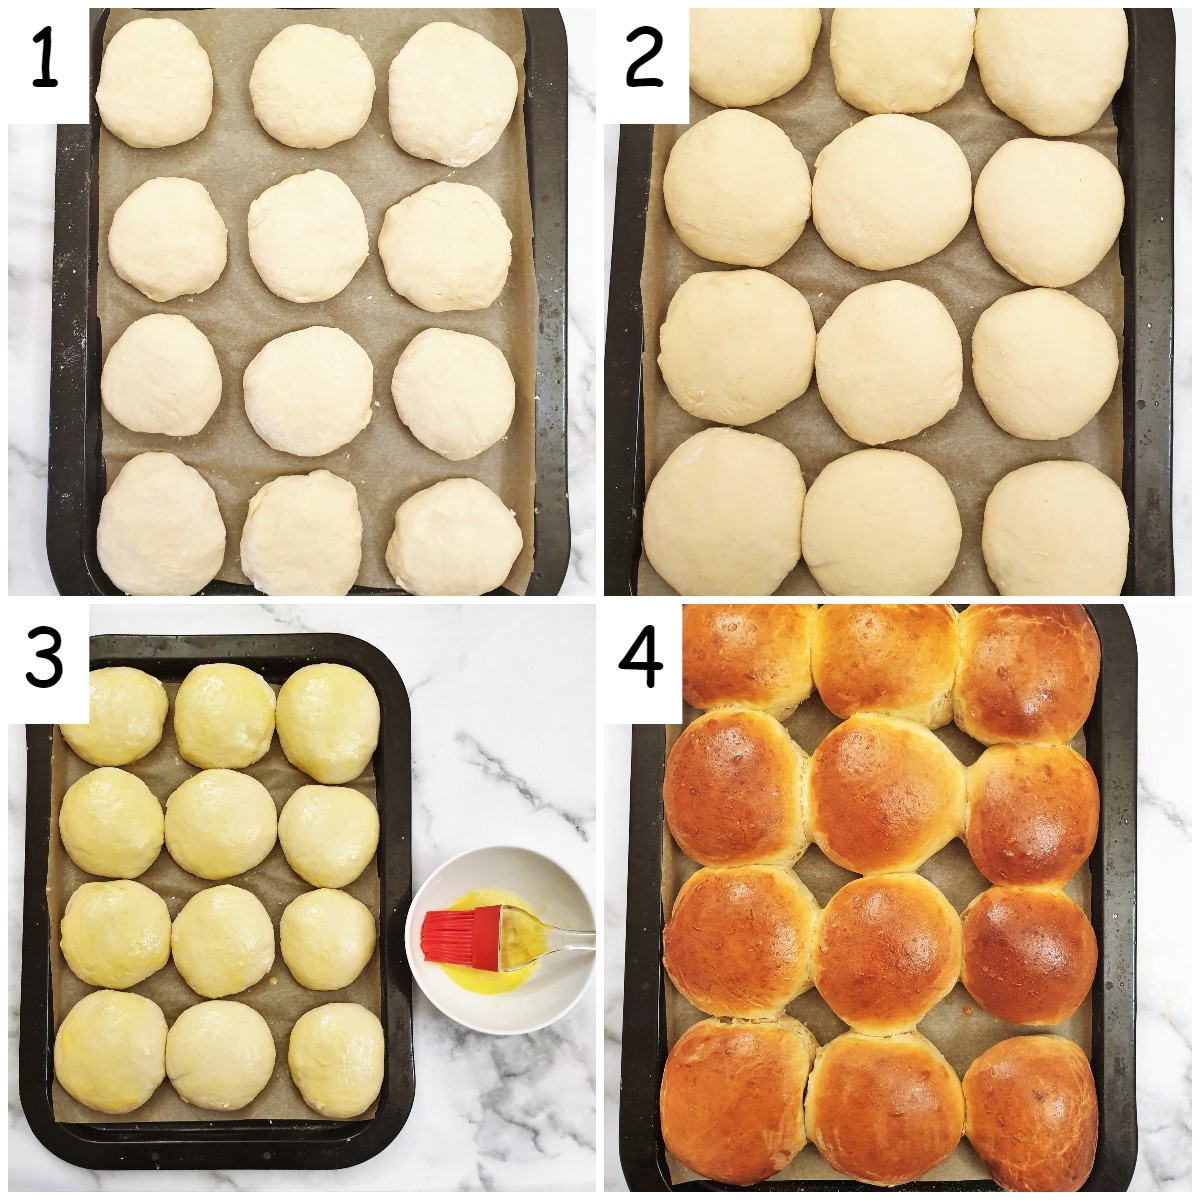 Steps for shaping the rolls and baking.